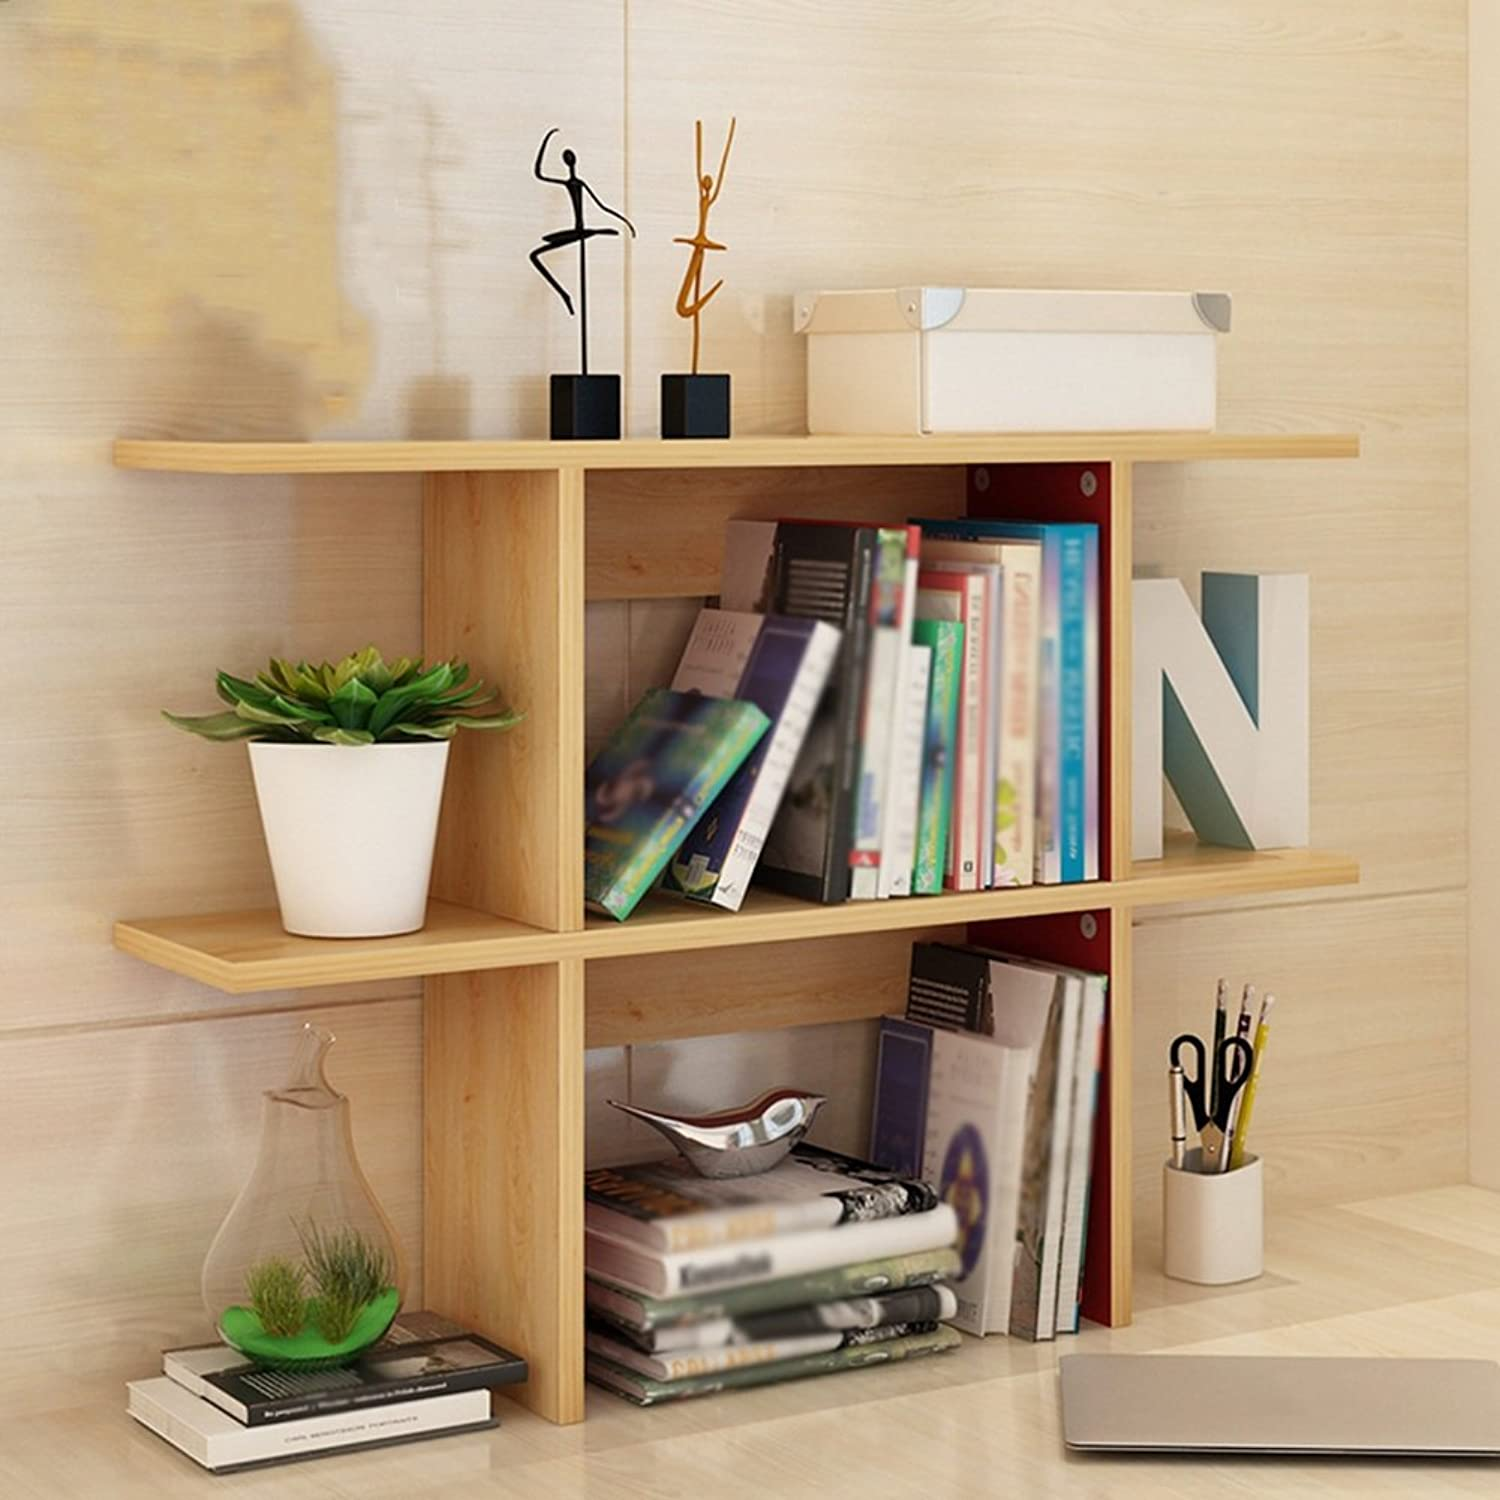 QIANGDA Bookshelf Bookrack Desktop Storage Rack Commodity Shelf Unit Room Divider Shelf, 3 Sizes Optional (Size   90 x 20 x 63cm)